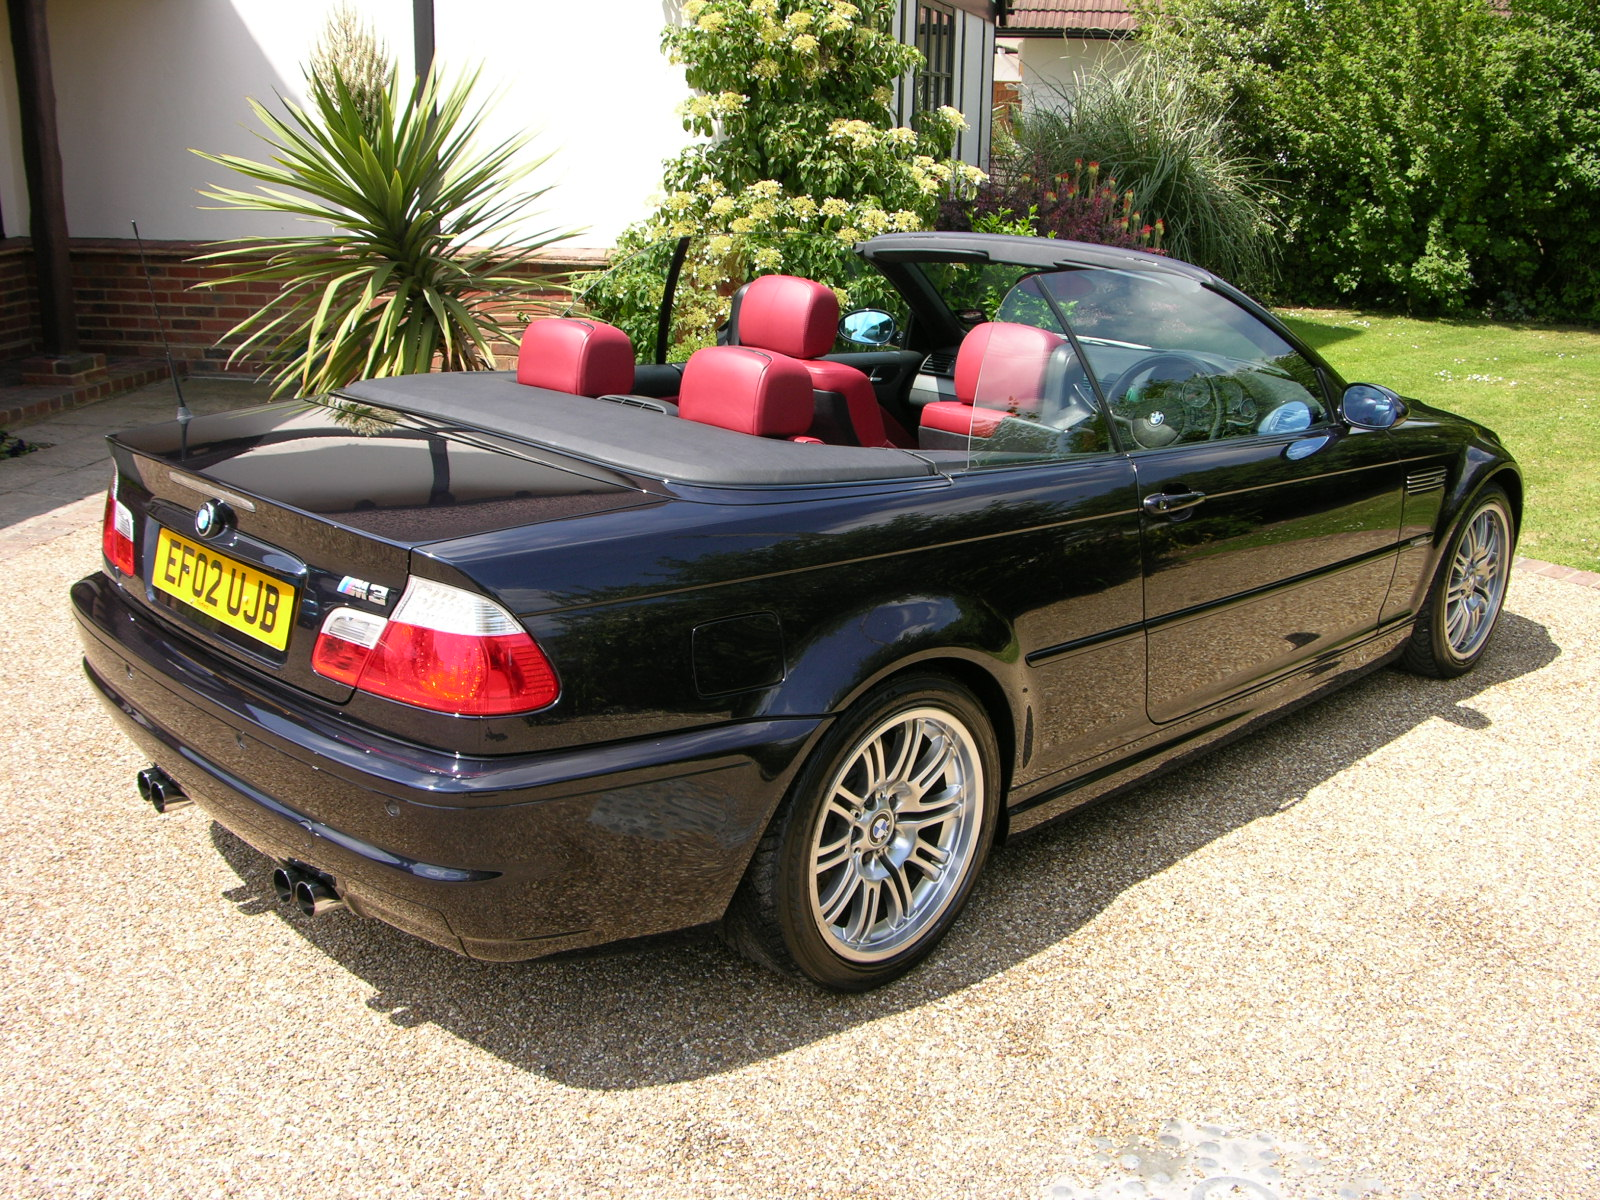 File:BMW M3 E46 Convertible - Flickr - The Car Spy (11).